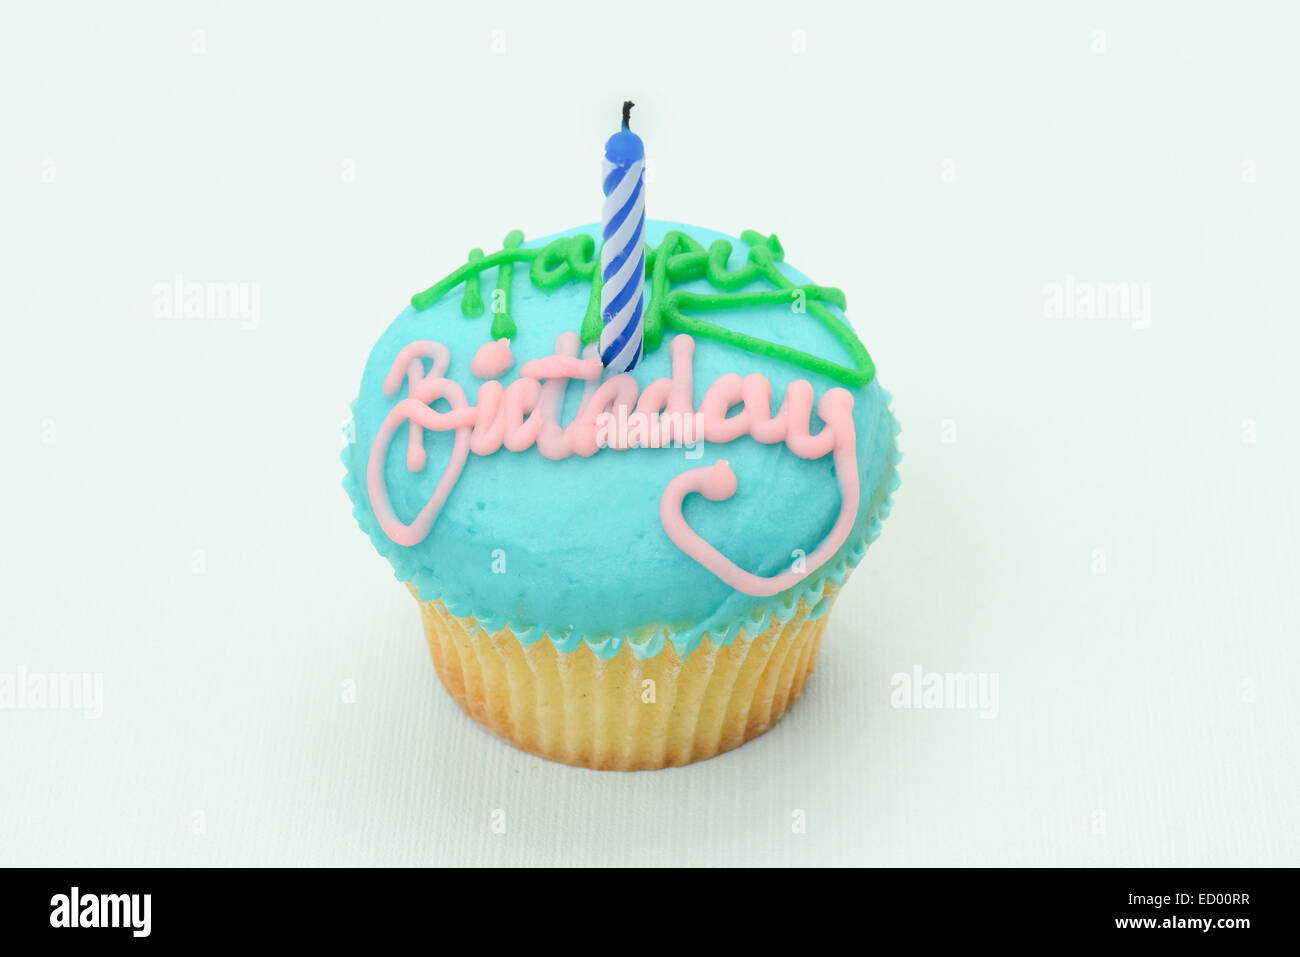 Gute Küche Vanille Cupcake Happy Birthday Text Stockfotos And Happy Birthday Text